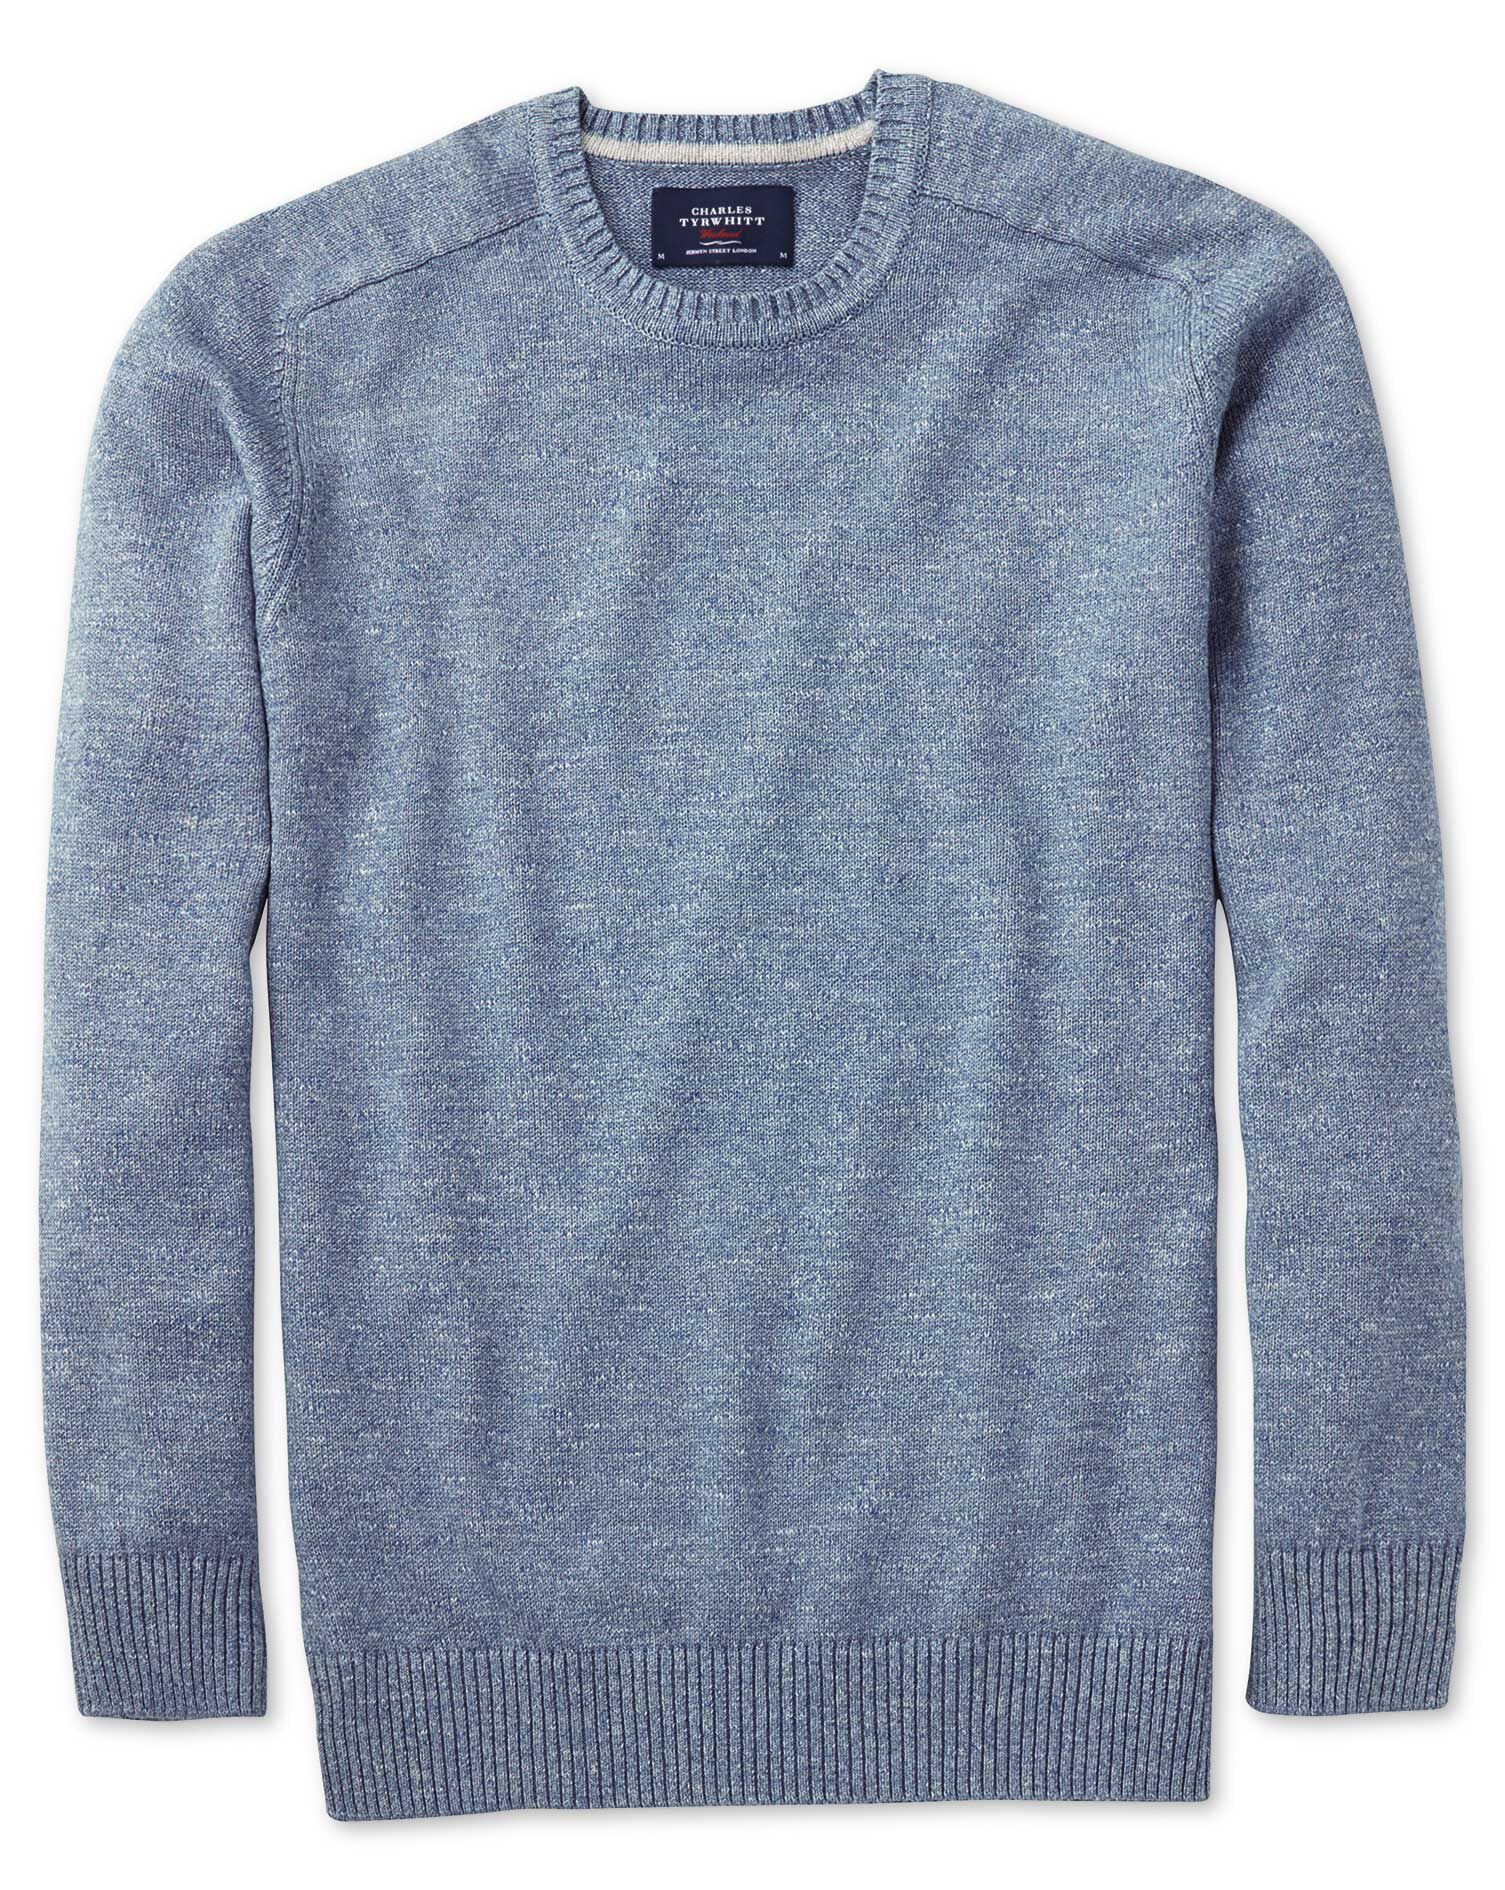 Sky Blue Heather Crew Neck Cotton Jumper Size XS by Charles Tyrwhitt